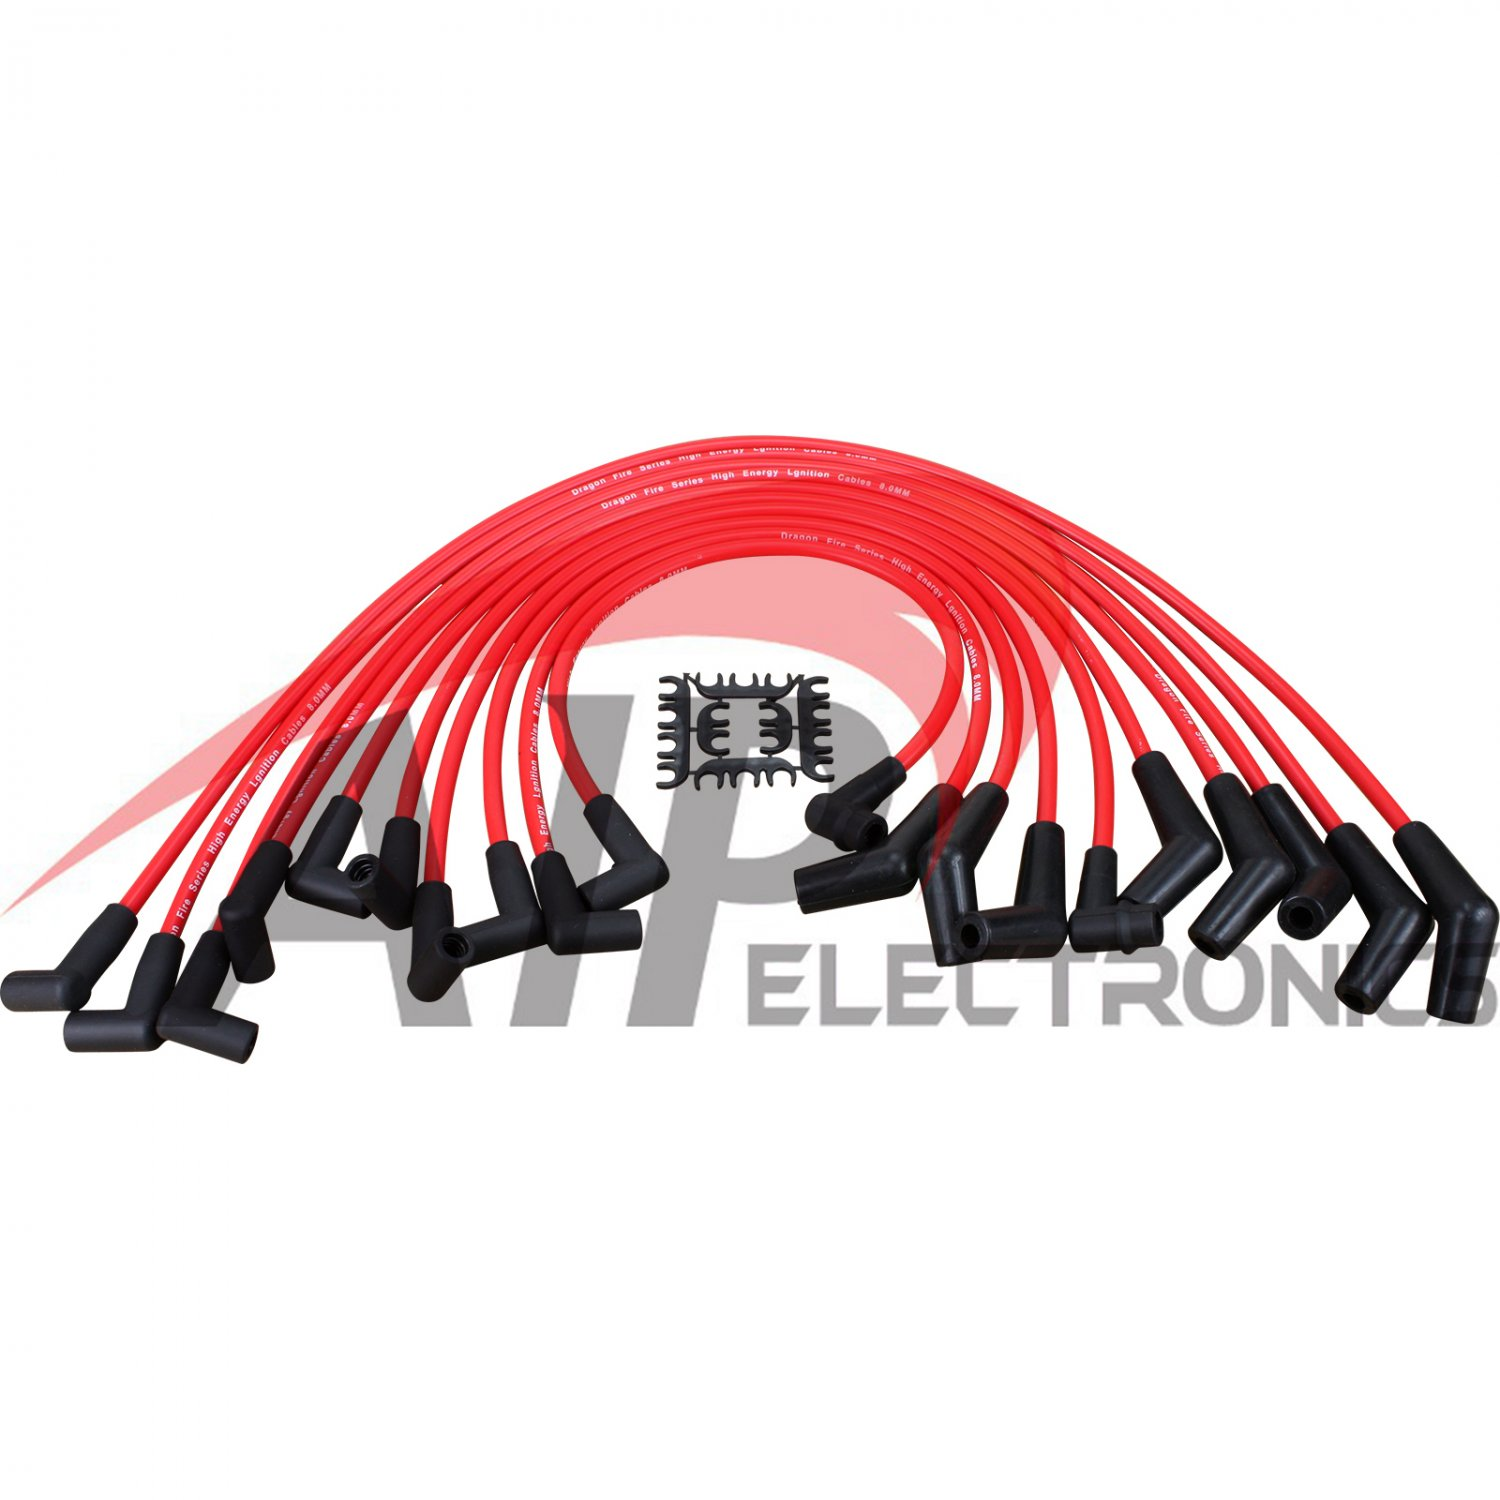 Performance Spark Plug Wires For 1983-1997 Mustang Bronco 5.0L 5.8L 302 351W 460